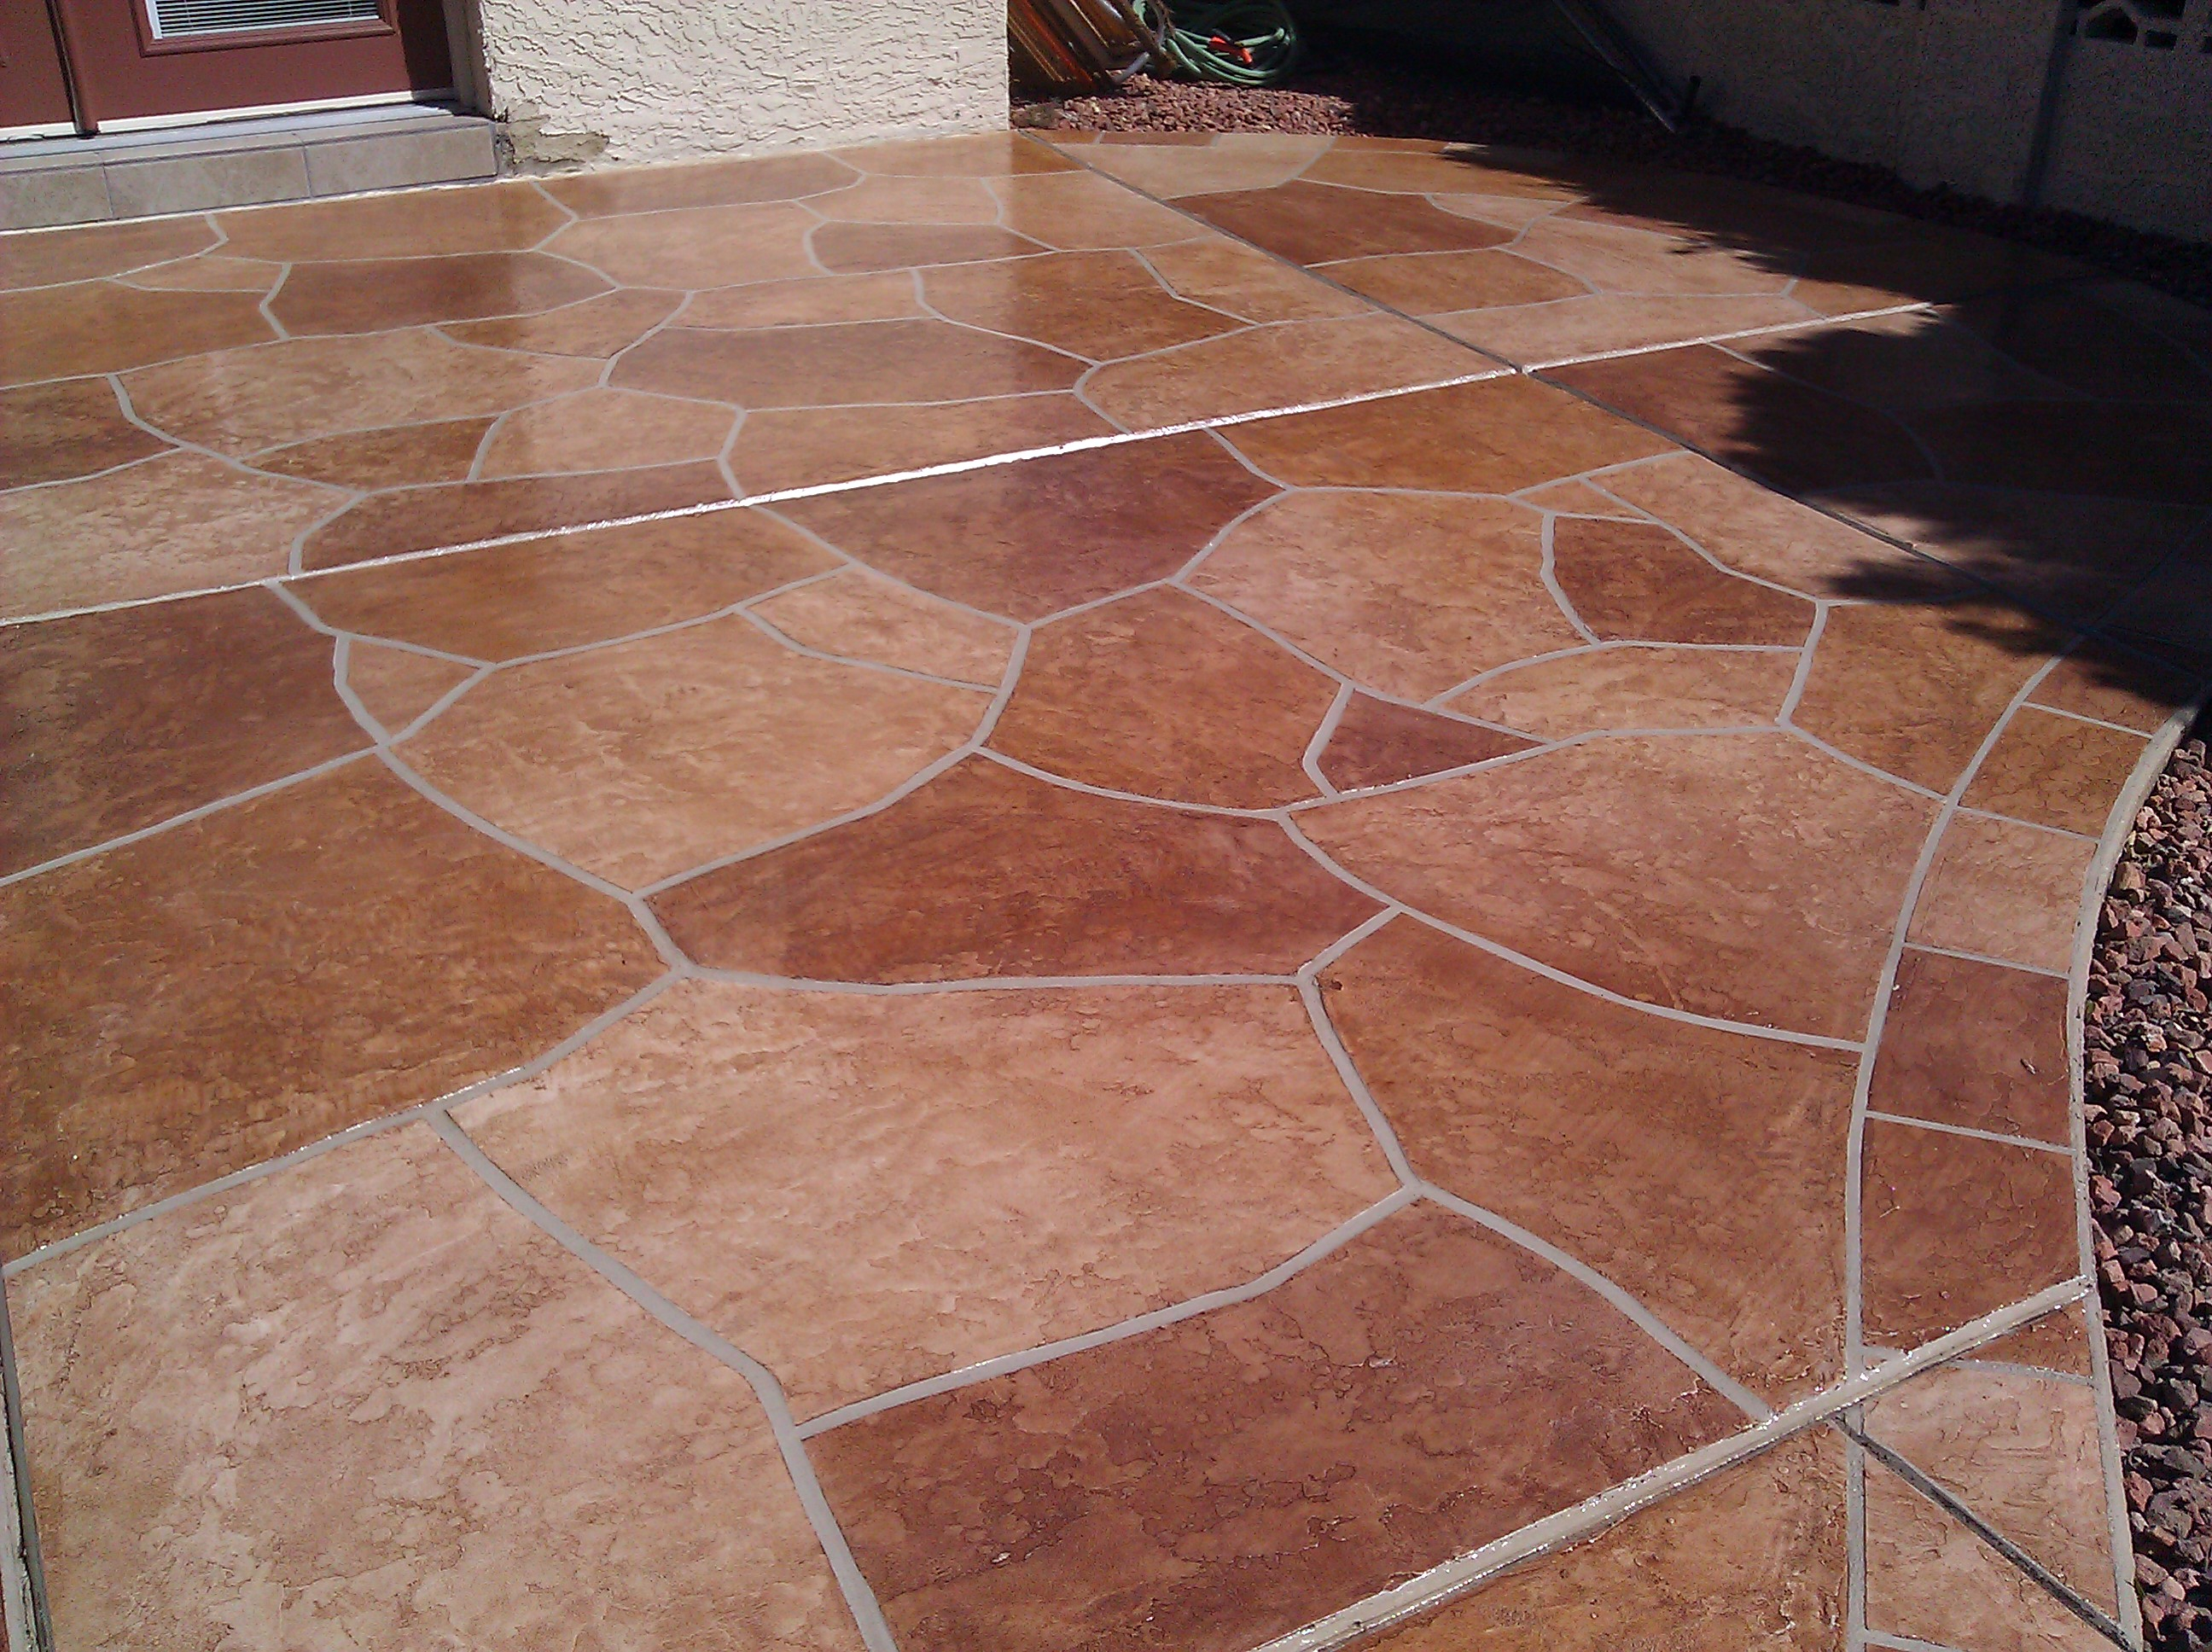 Sealant Flagstone Patio Ideas